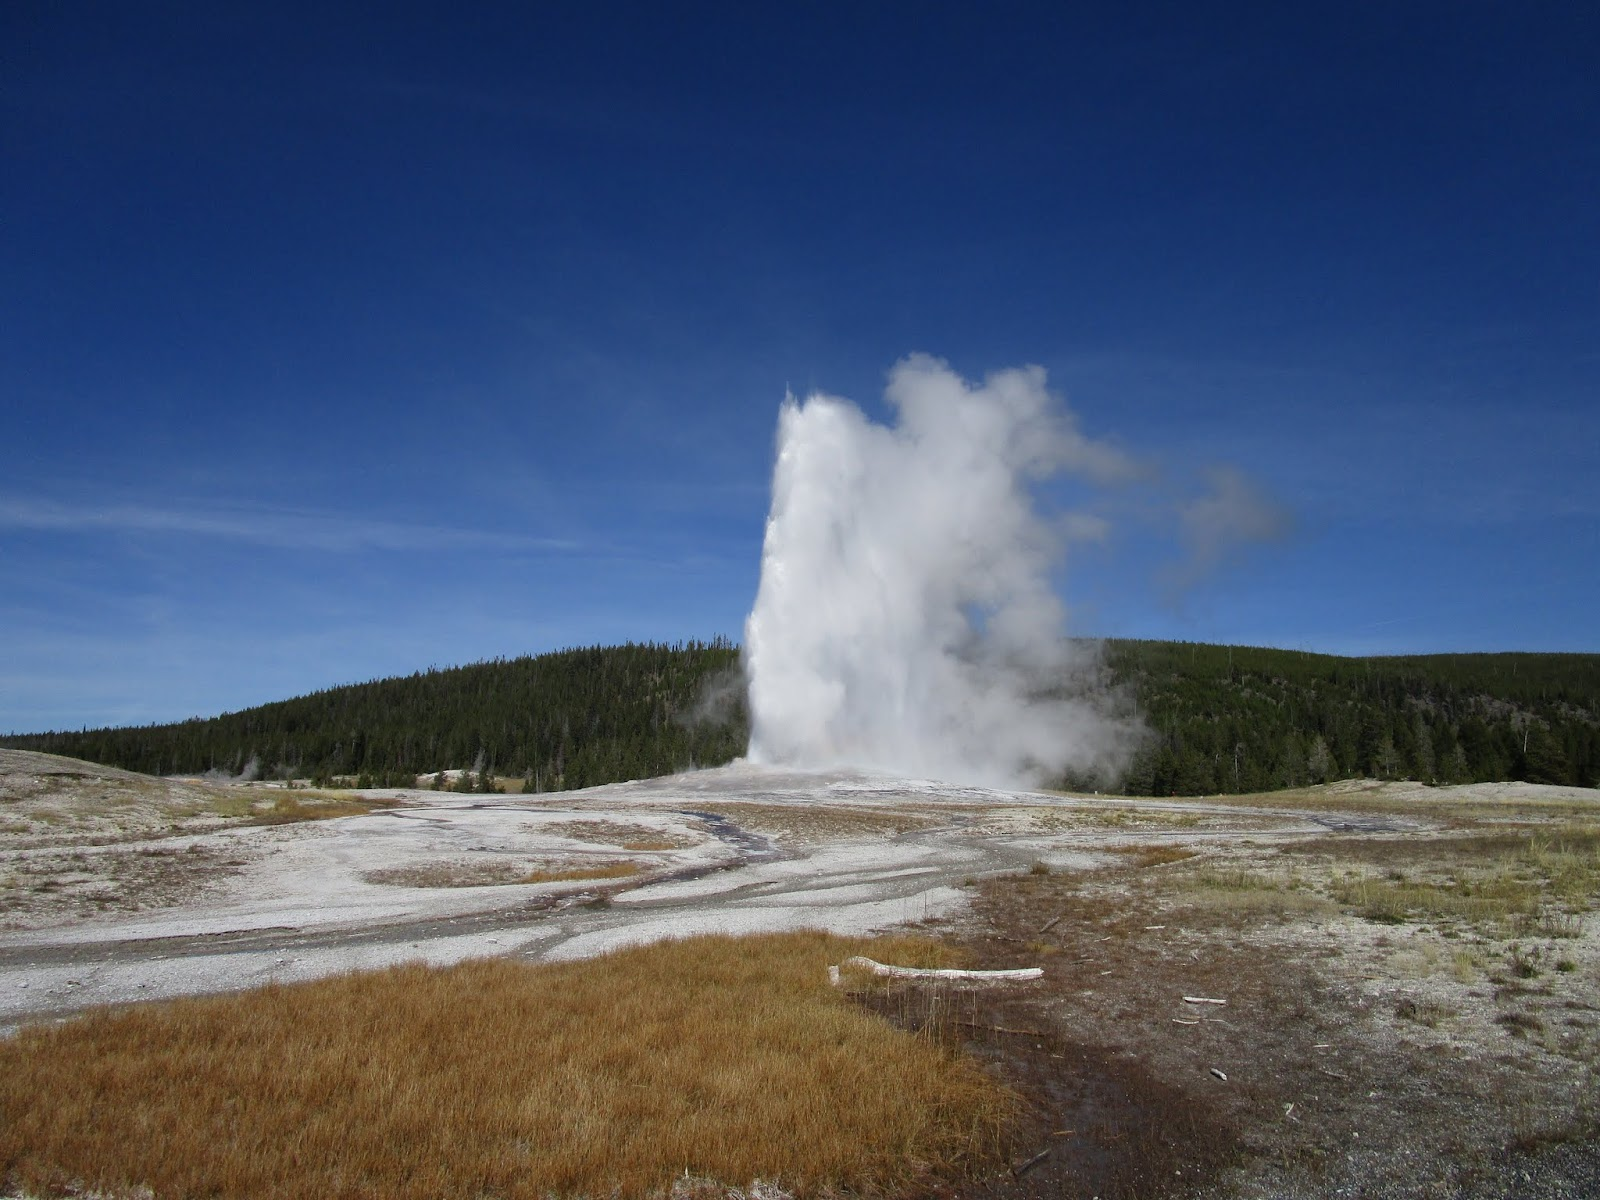 Гейзер Олд Фейтфул, Парк Йеллоустоун (Old Faithful Geyser, Yellowstone)